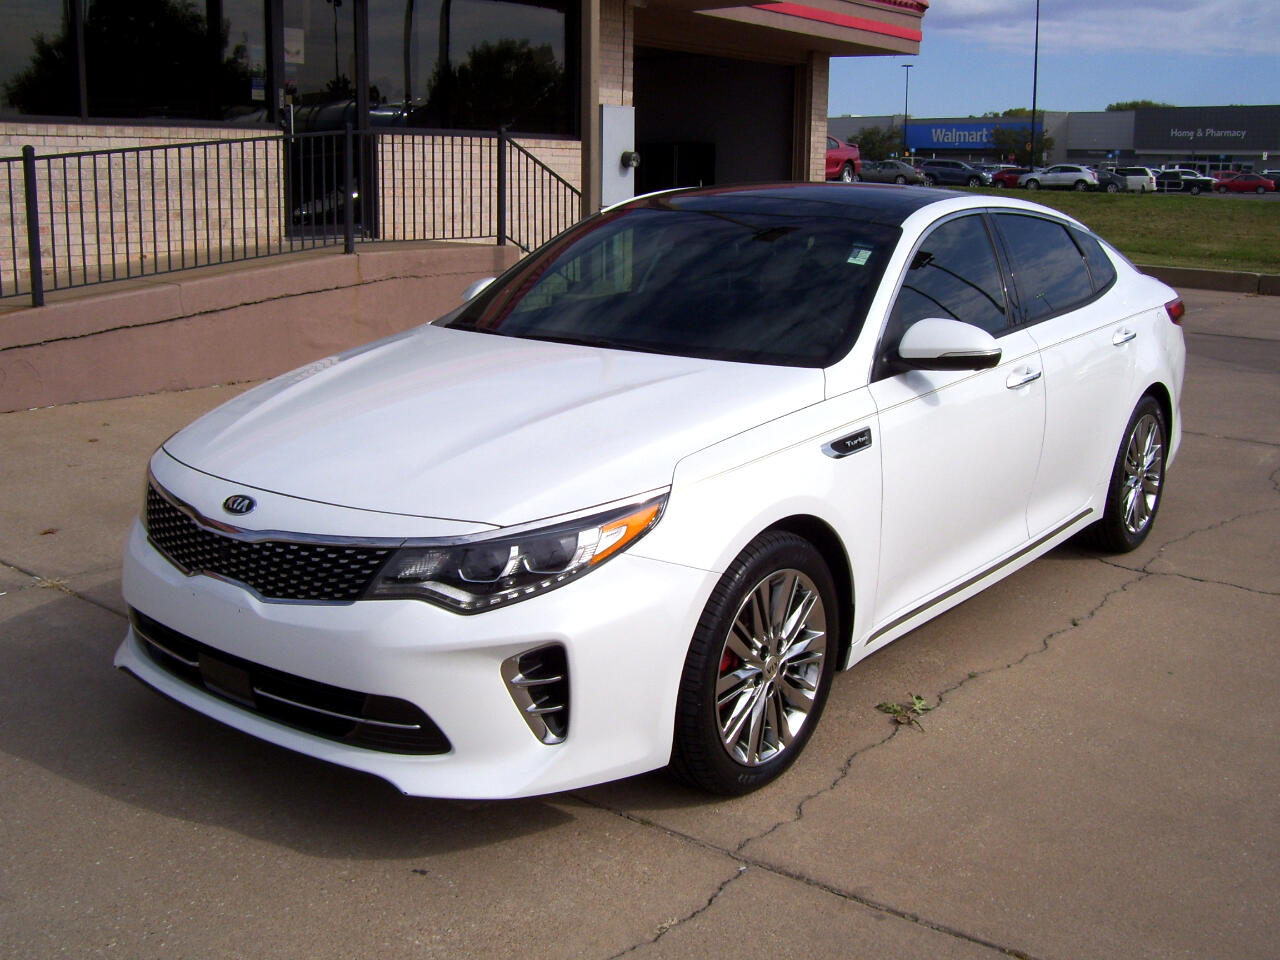 Kia Optima SXL Turbo 2017